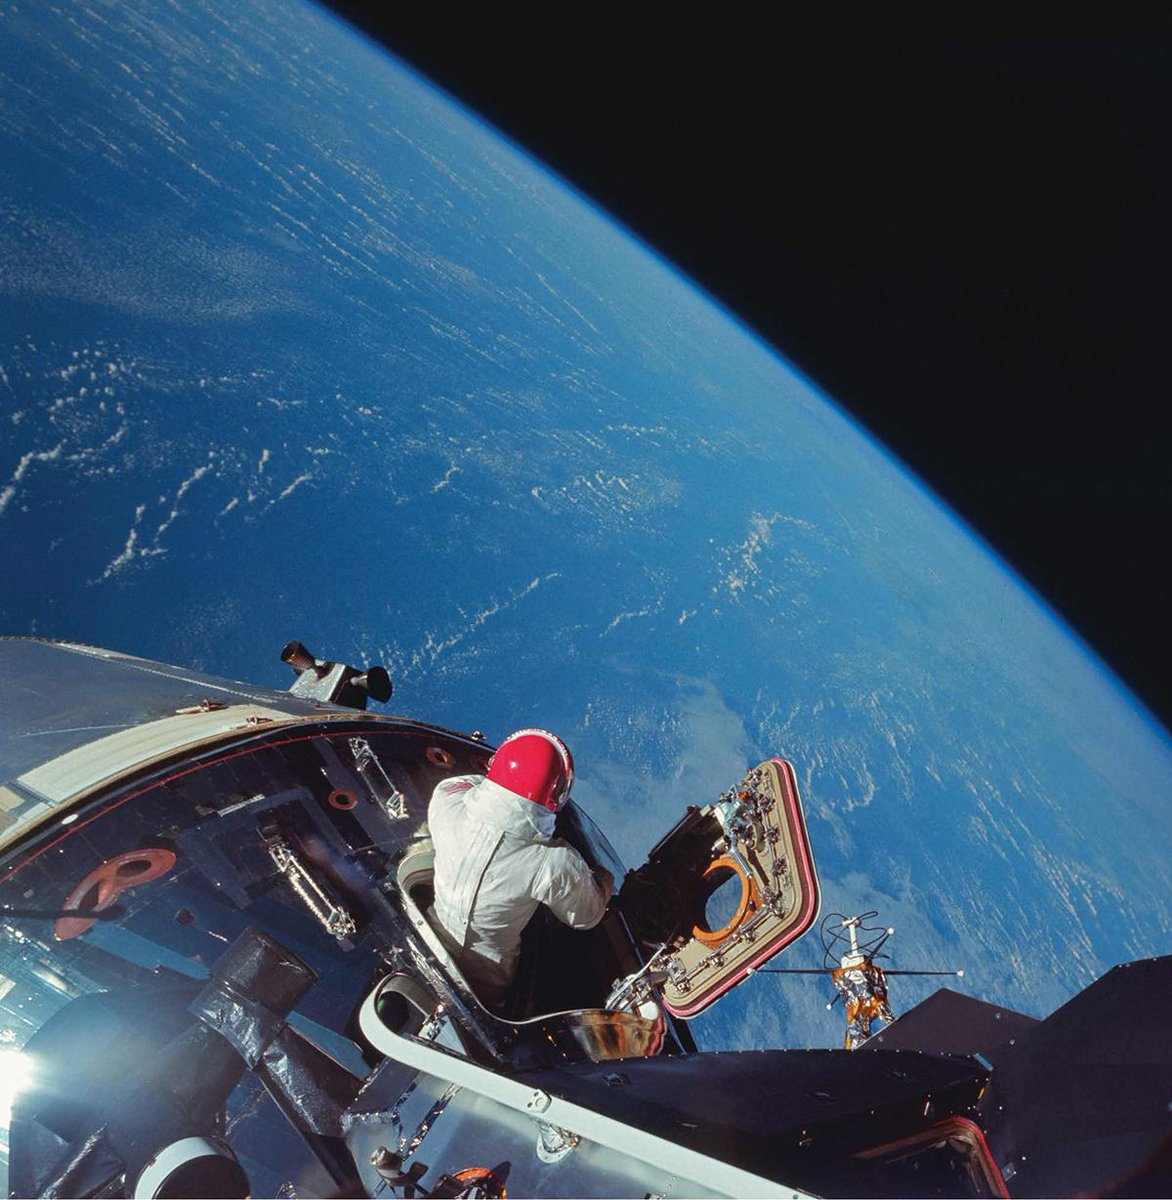 Blasts from the past: NASA's incredible photo archives capture 60 years of space travel https://t.co/WZBcBL8WRT